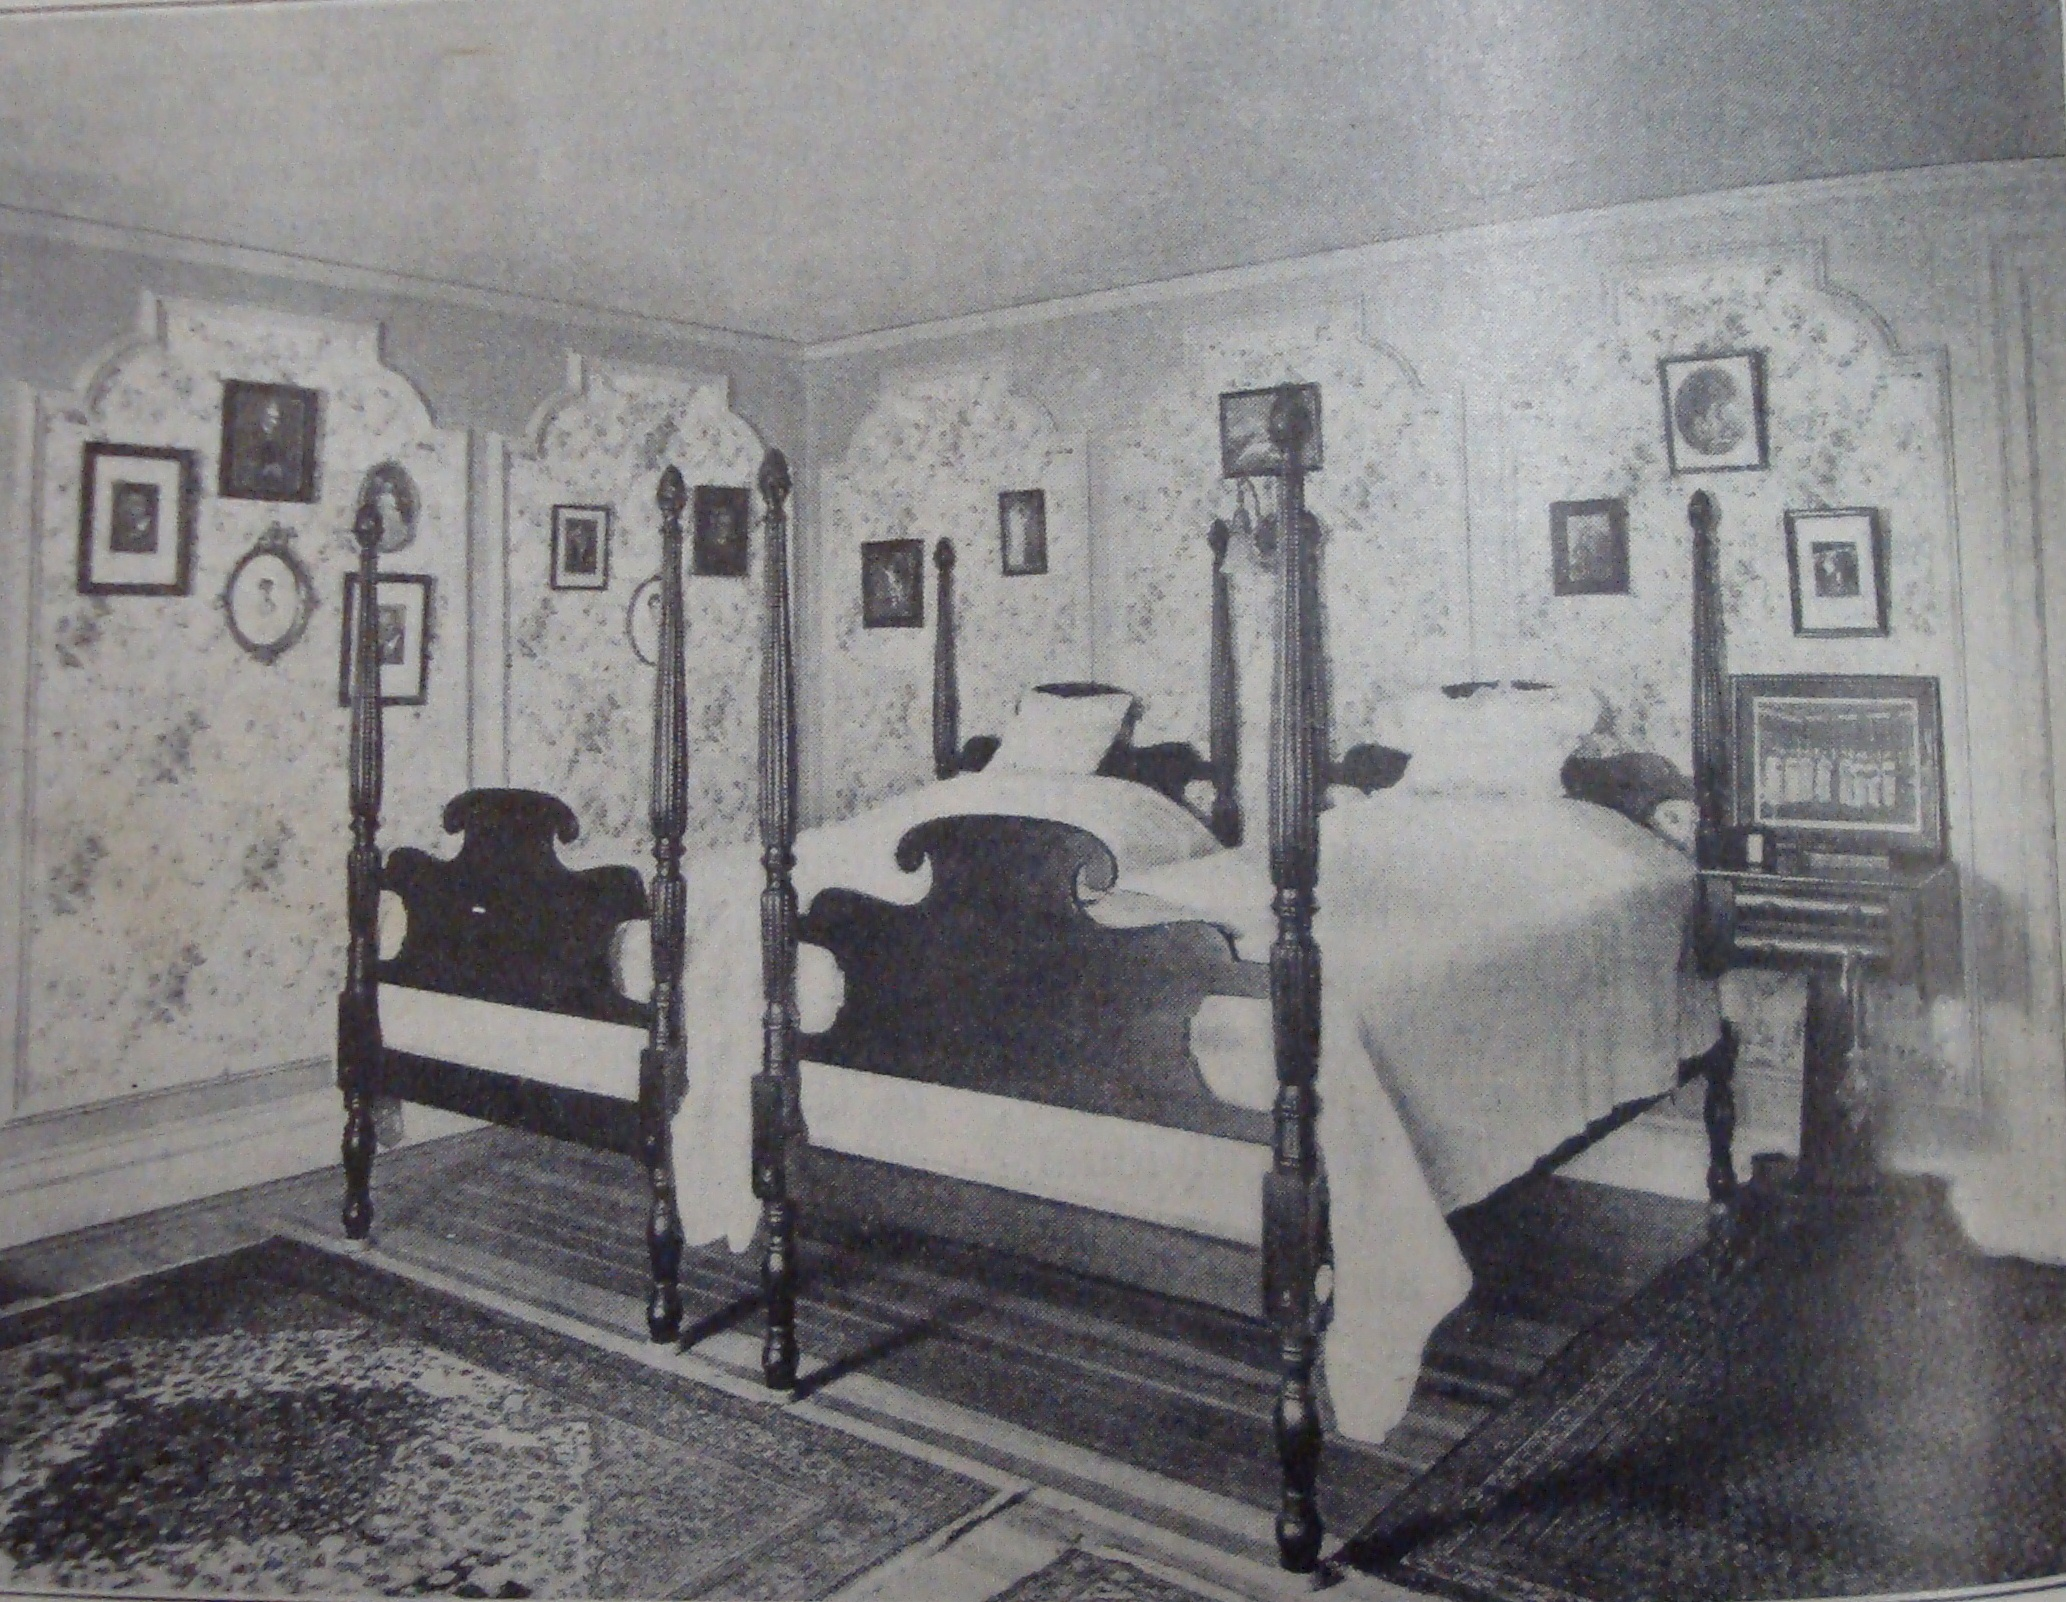 Moved sister to own bedroom a hundred years ago for Locked out of bedroom